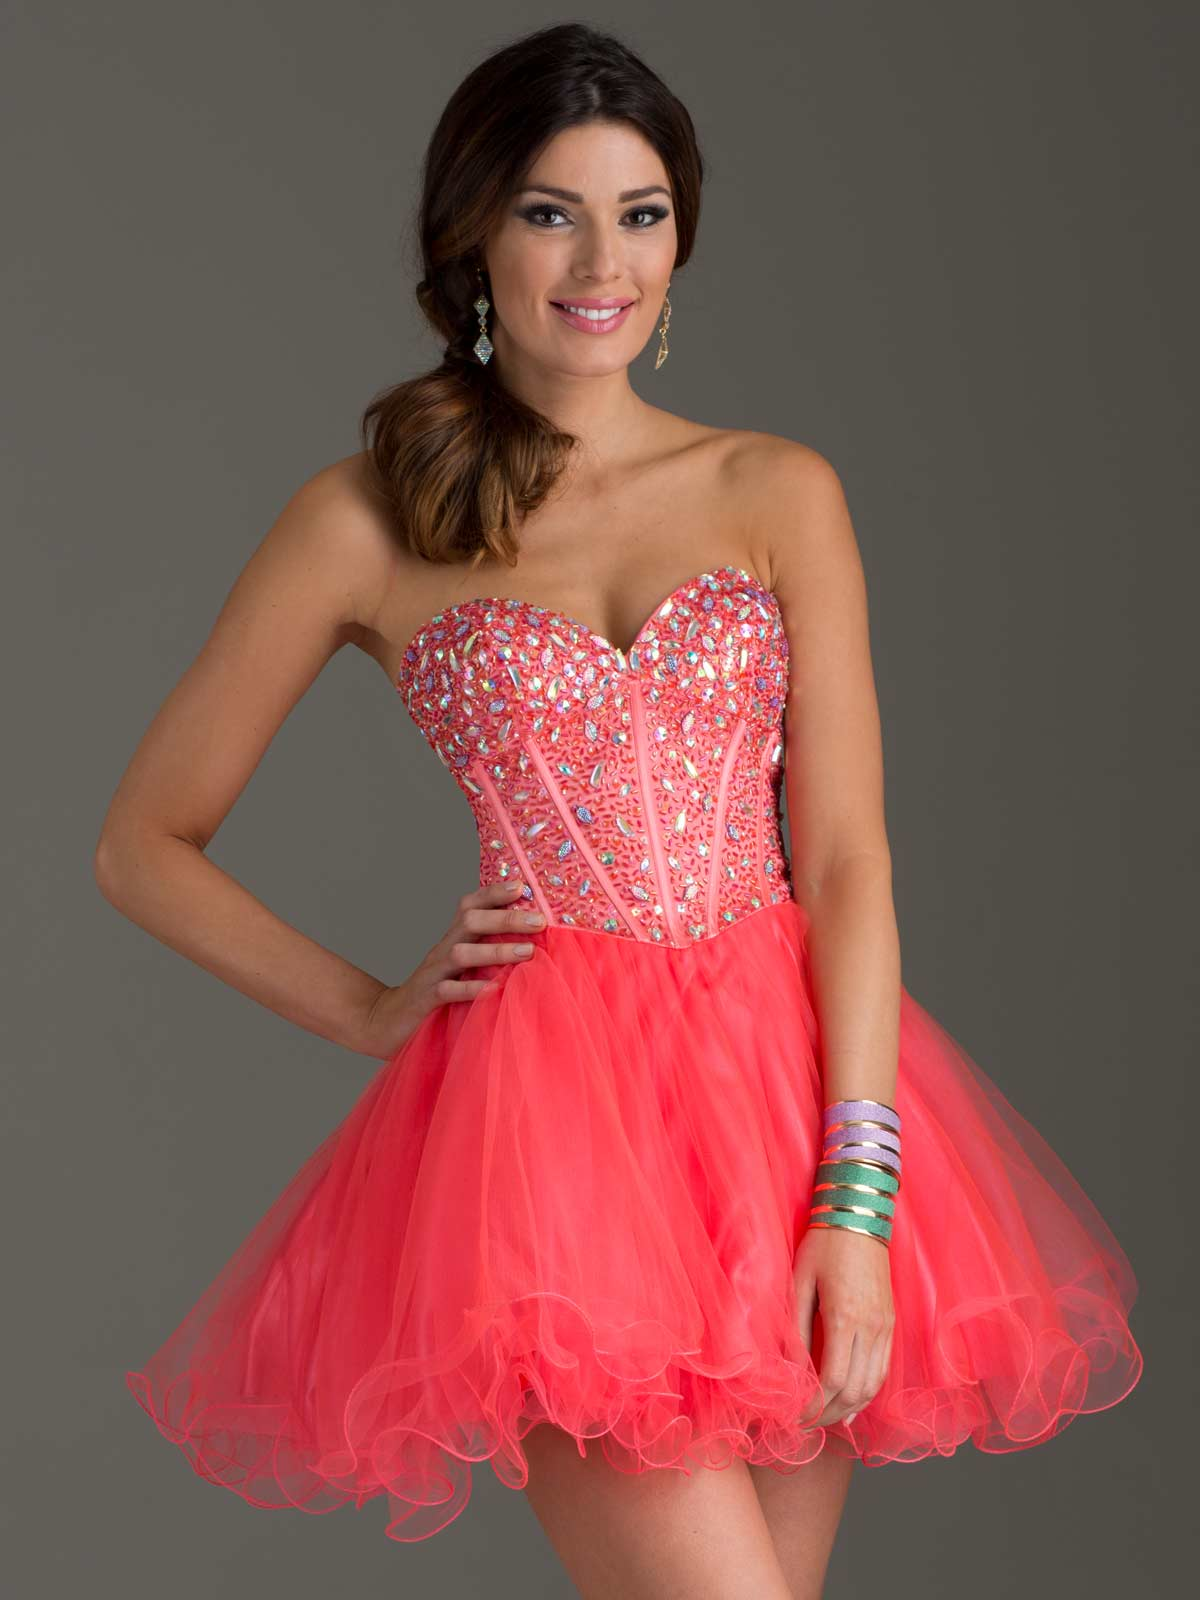 Clarisse 2014 Short Homecoming Dress 2461 Promgirl Net